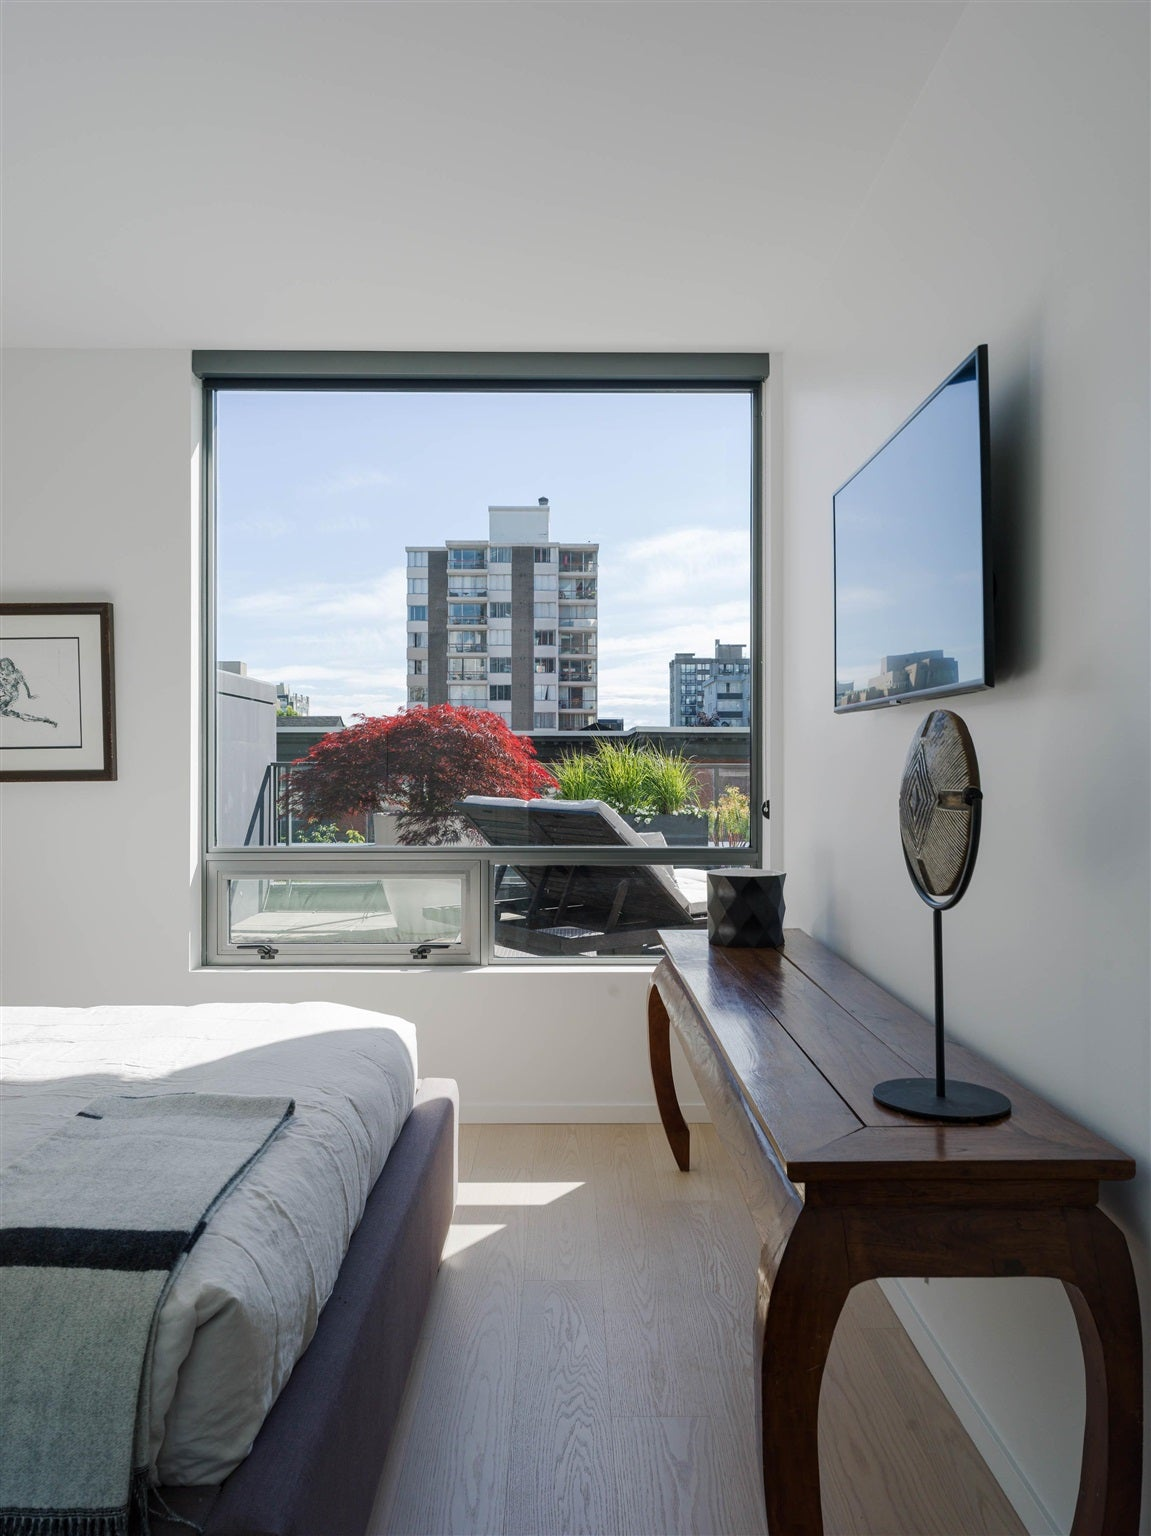 403 1171 JERVIS STREET - West End VW Apartment/Condo for sale, 2 Bedrooms (R2591528) - #15